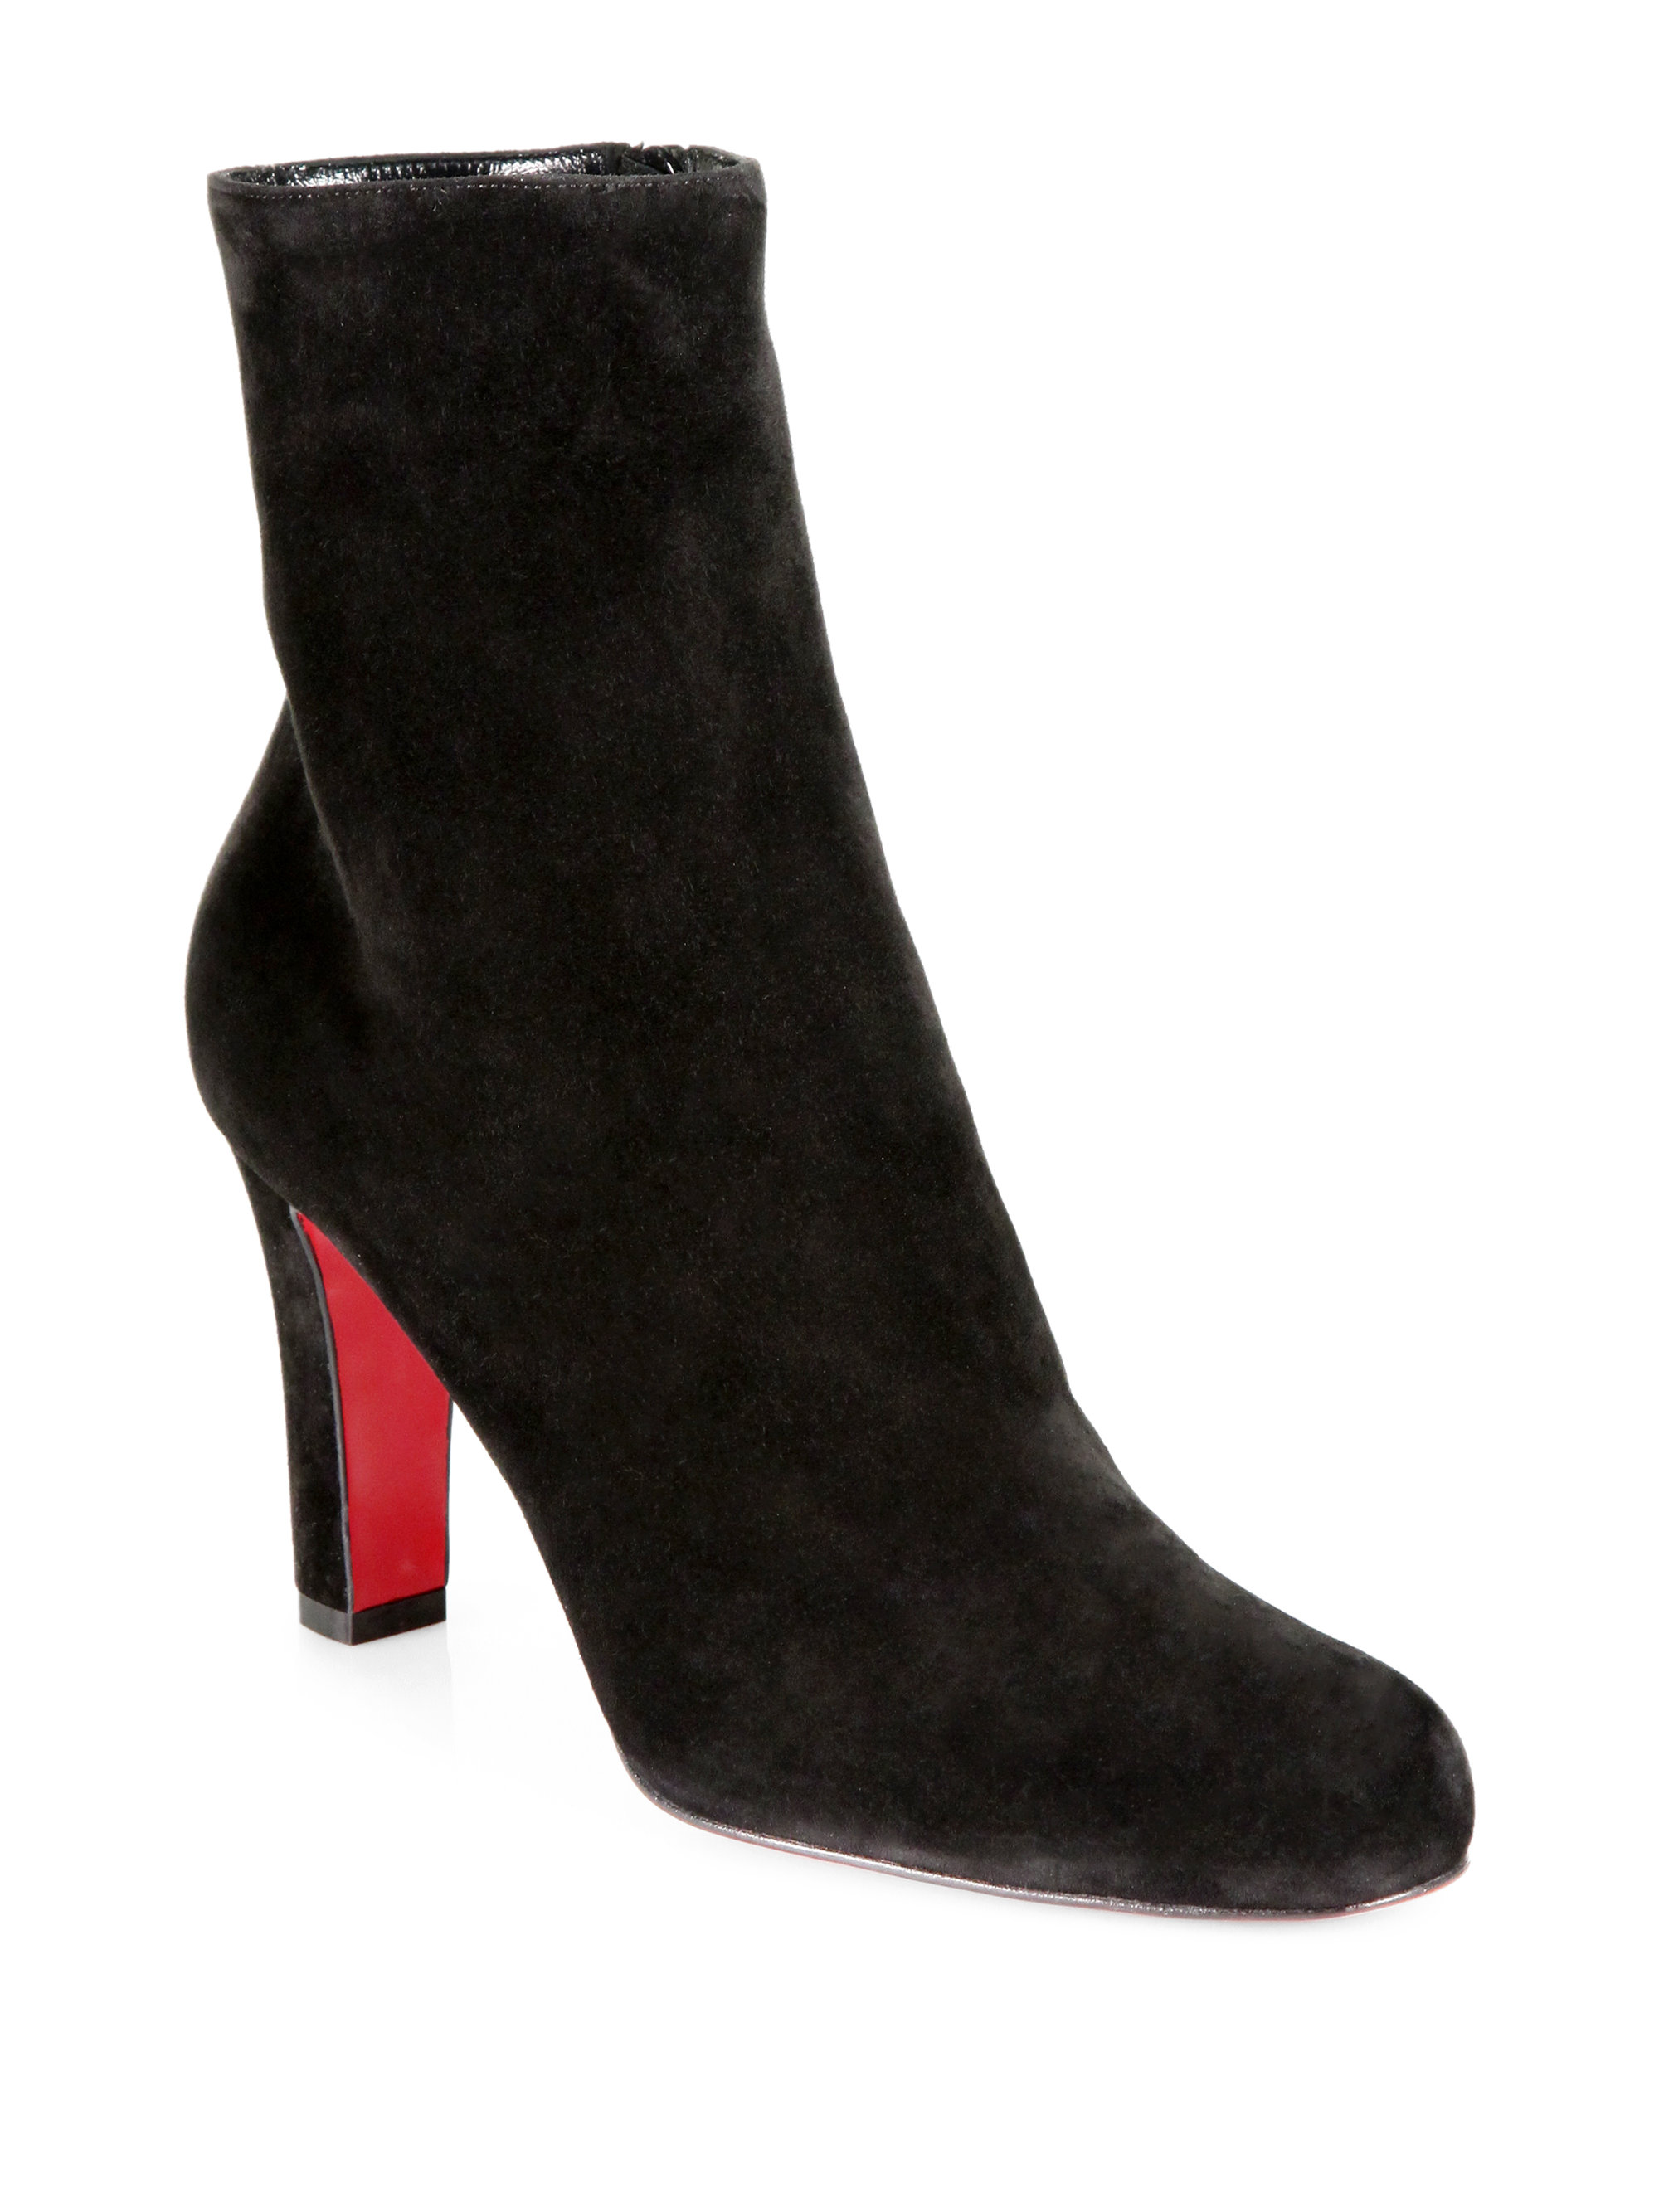 christian louboutin replicas men - Christian louboutin Unique 140 Leather Boots in Black | Lyst